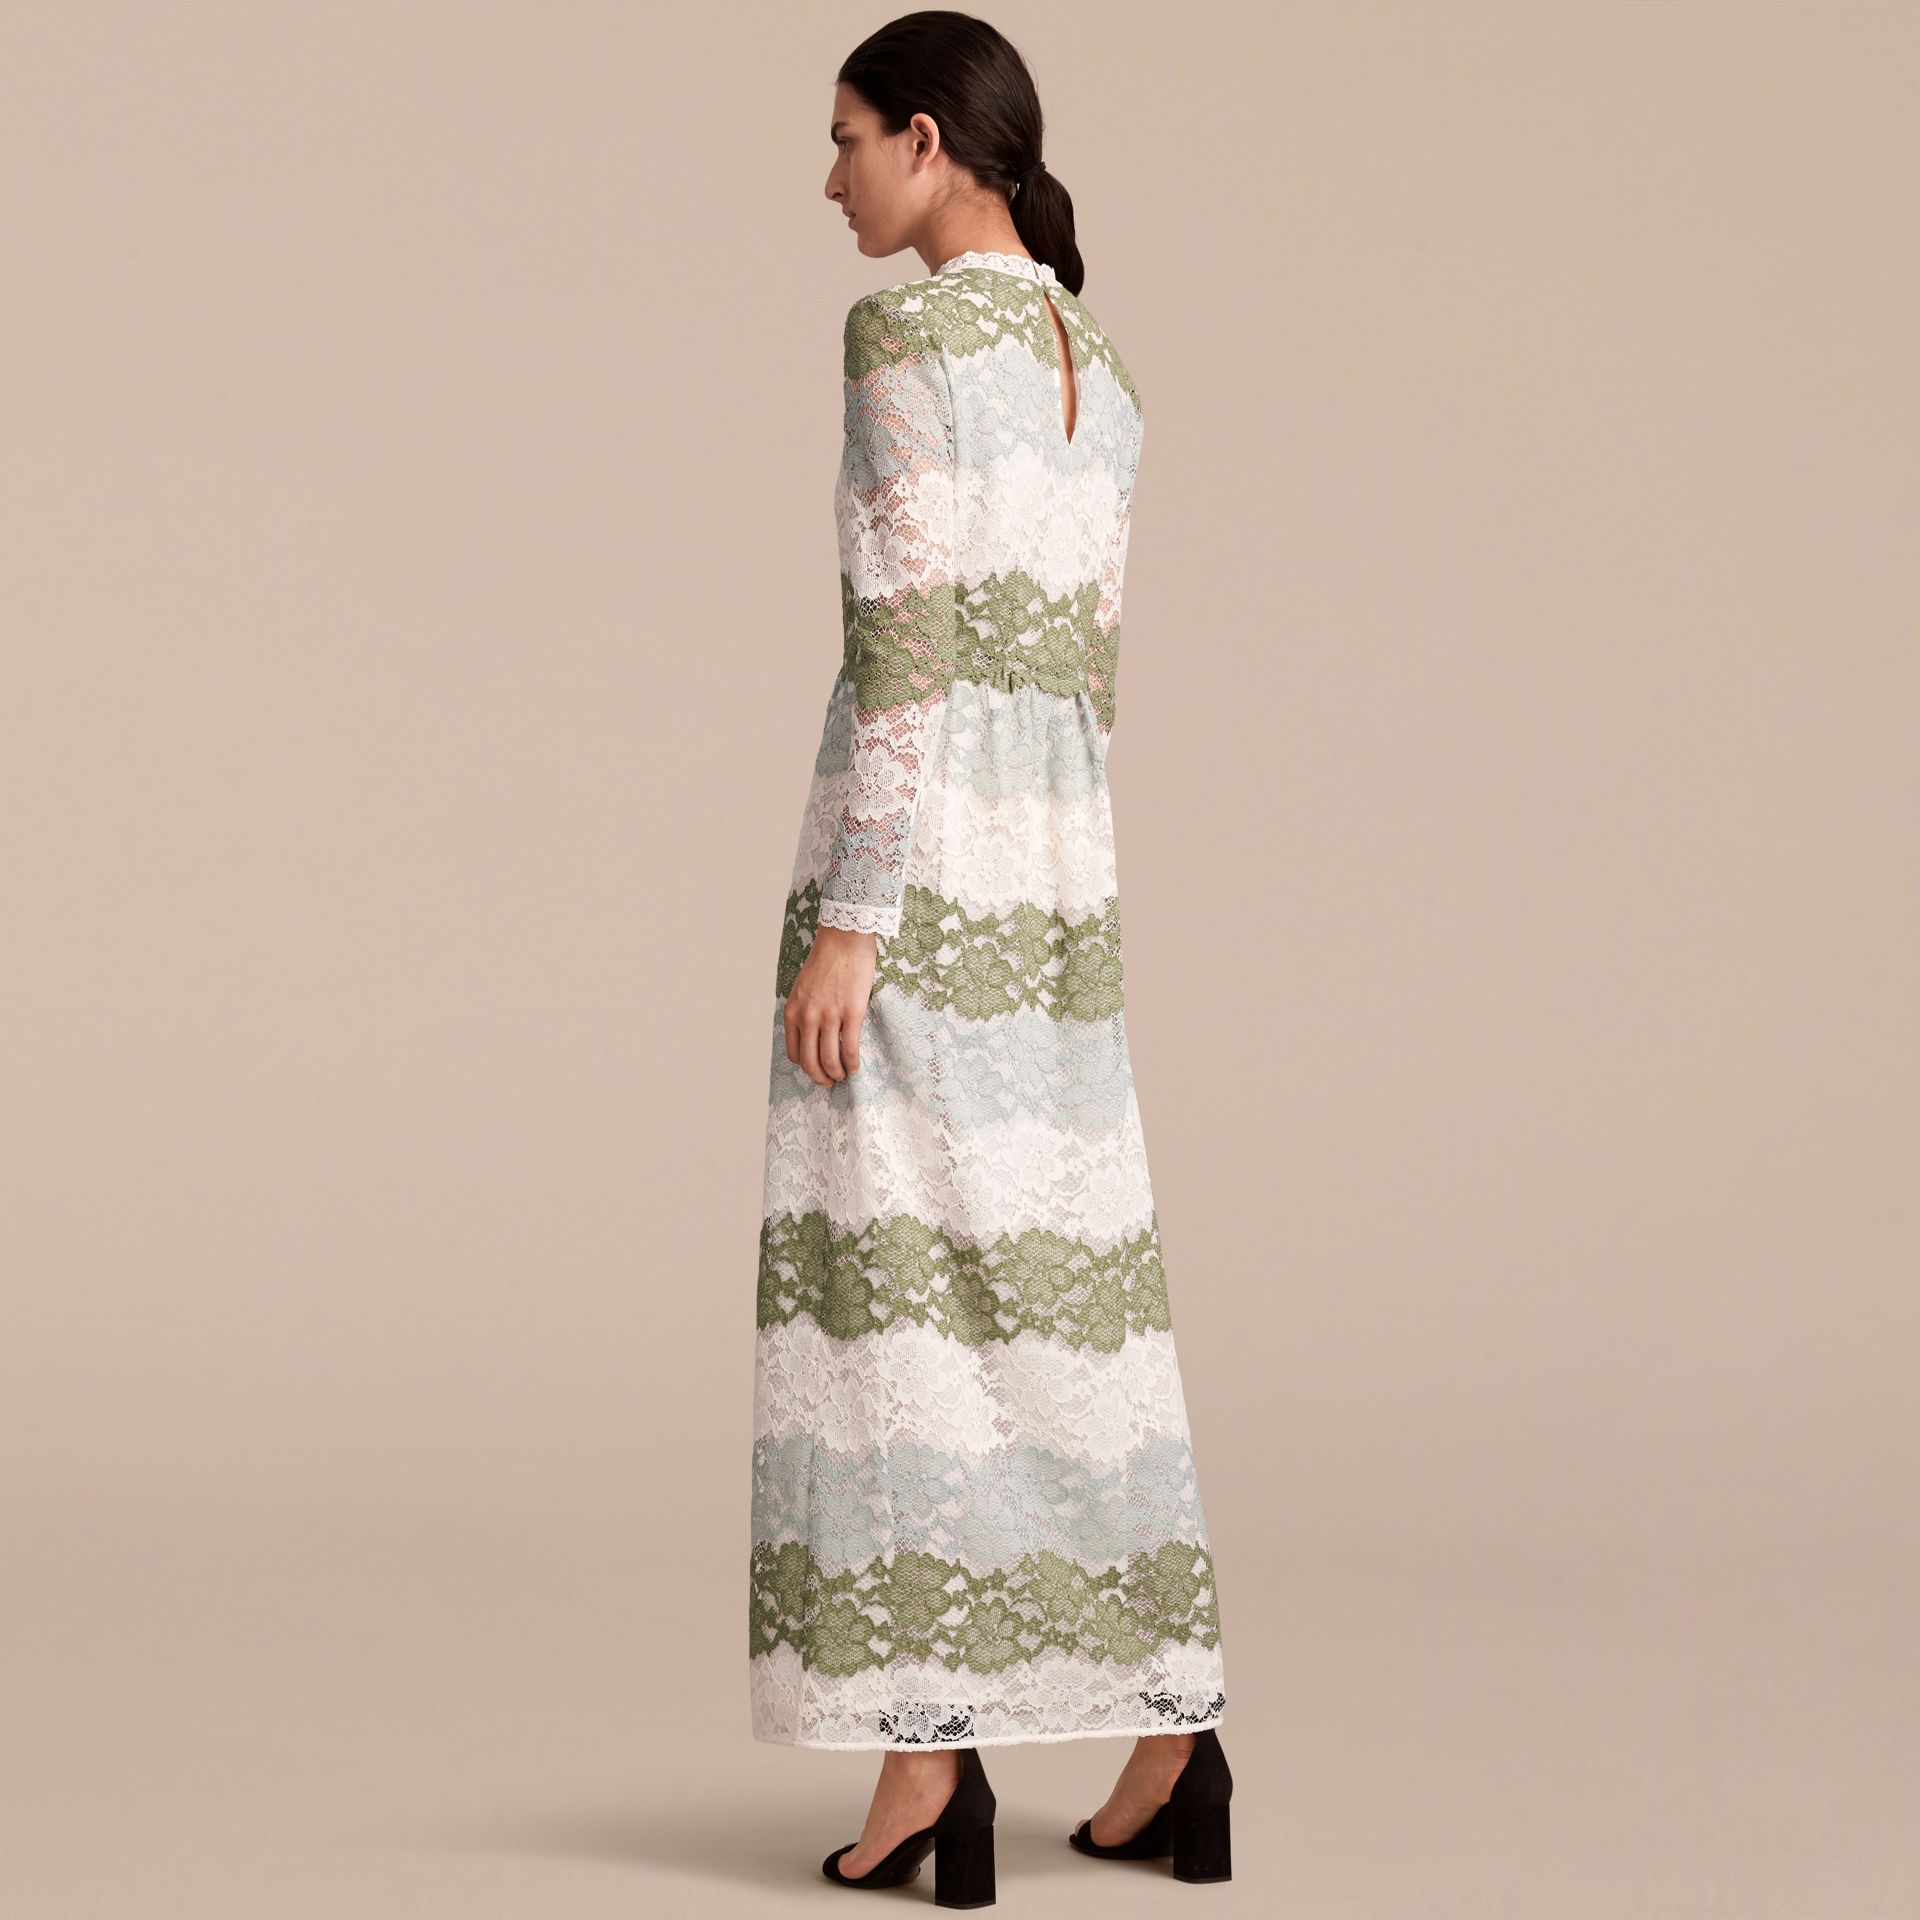 Floor-length Floral Lace Dress in Chalk Green - Women | Burberry - gallery image 3